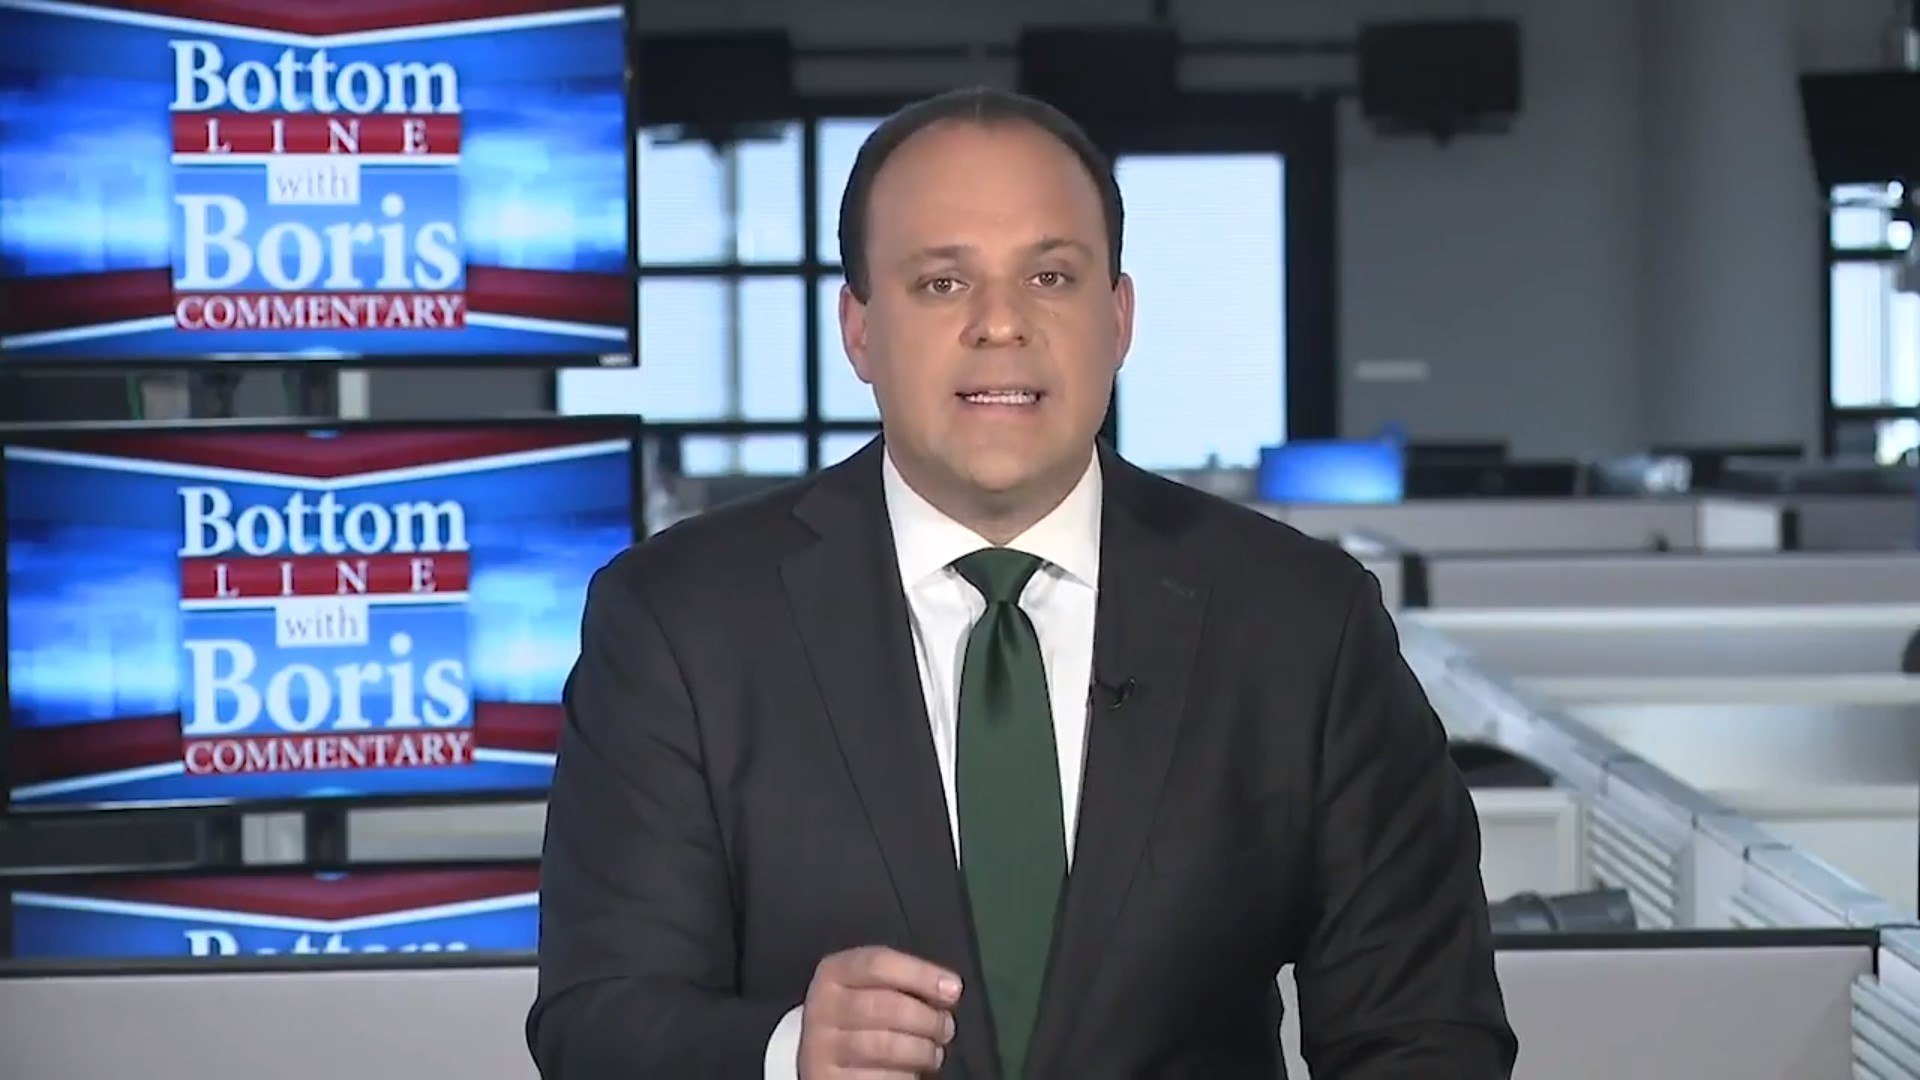 Sinclair Claims 'Must-Run' Segment From Former Trump Aide Doesn't 'Reflect' Their Views